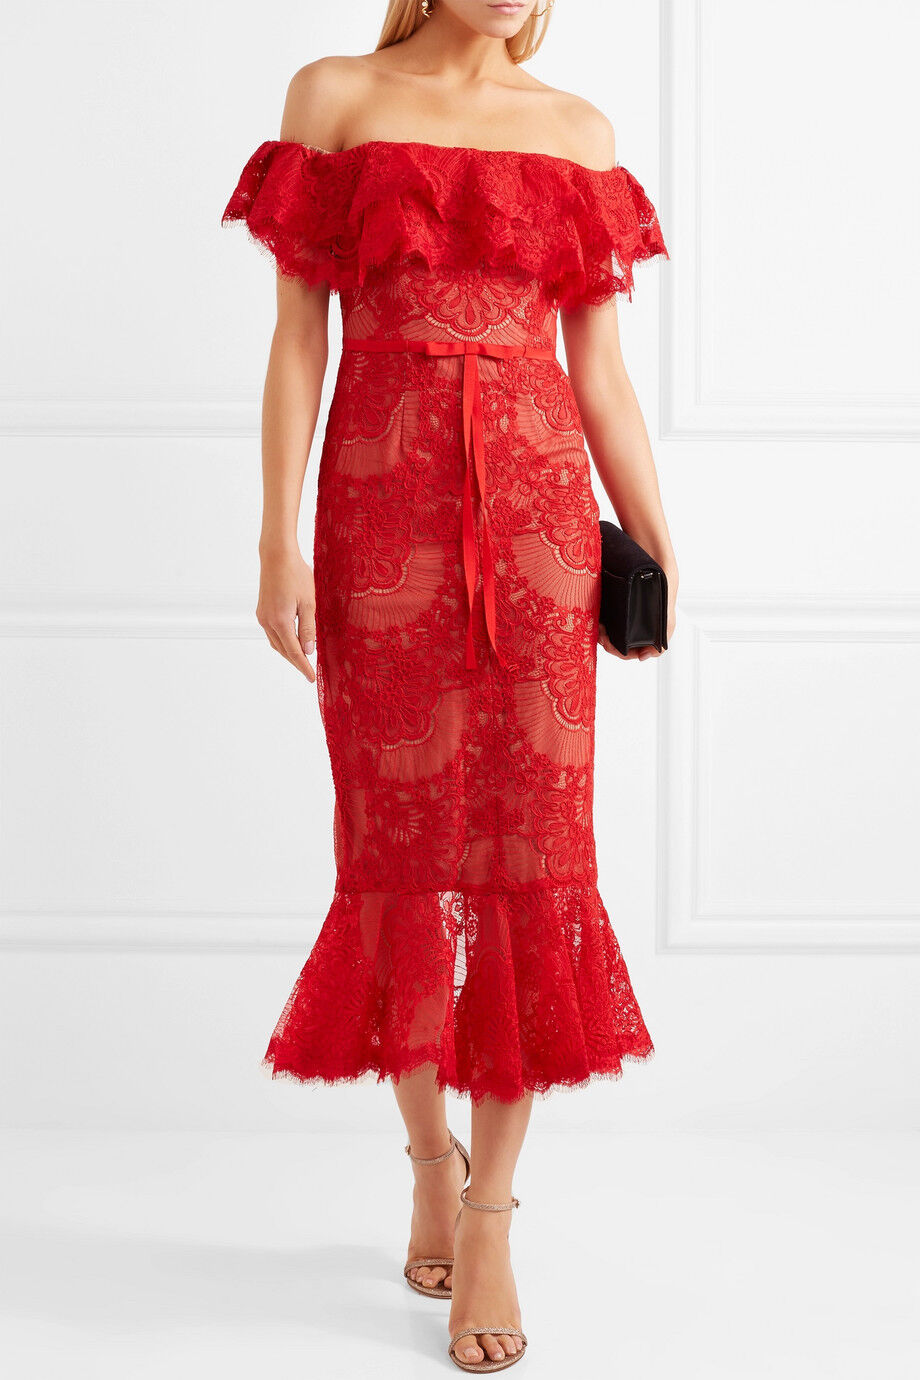 NEW Marchesa Notte Off the Shoulder Corded Lace Midi Dress Red 4 6 12